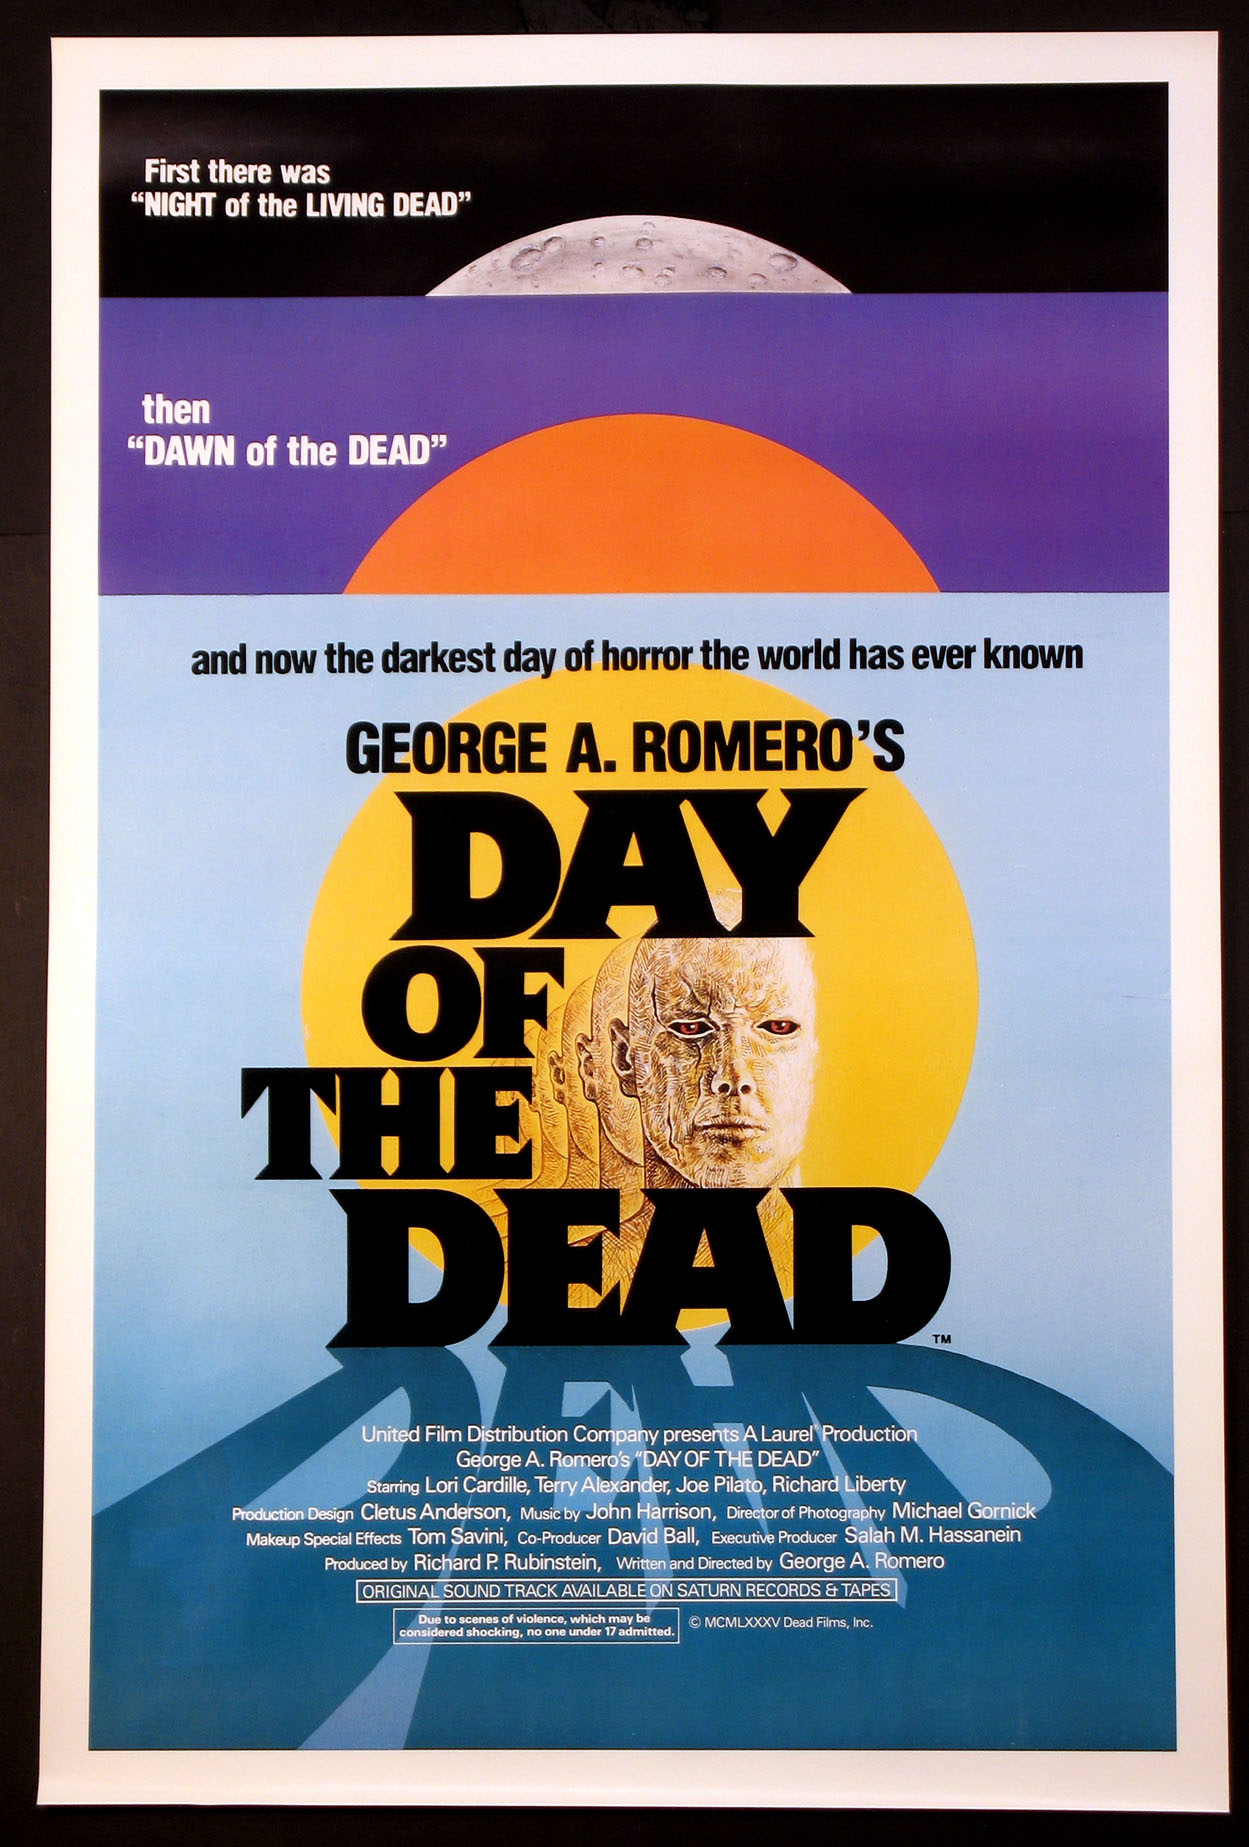 DAY OF THE DEAD @ FilmPosters.com